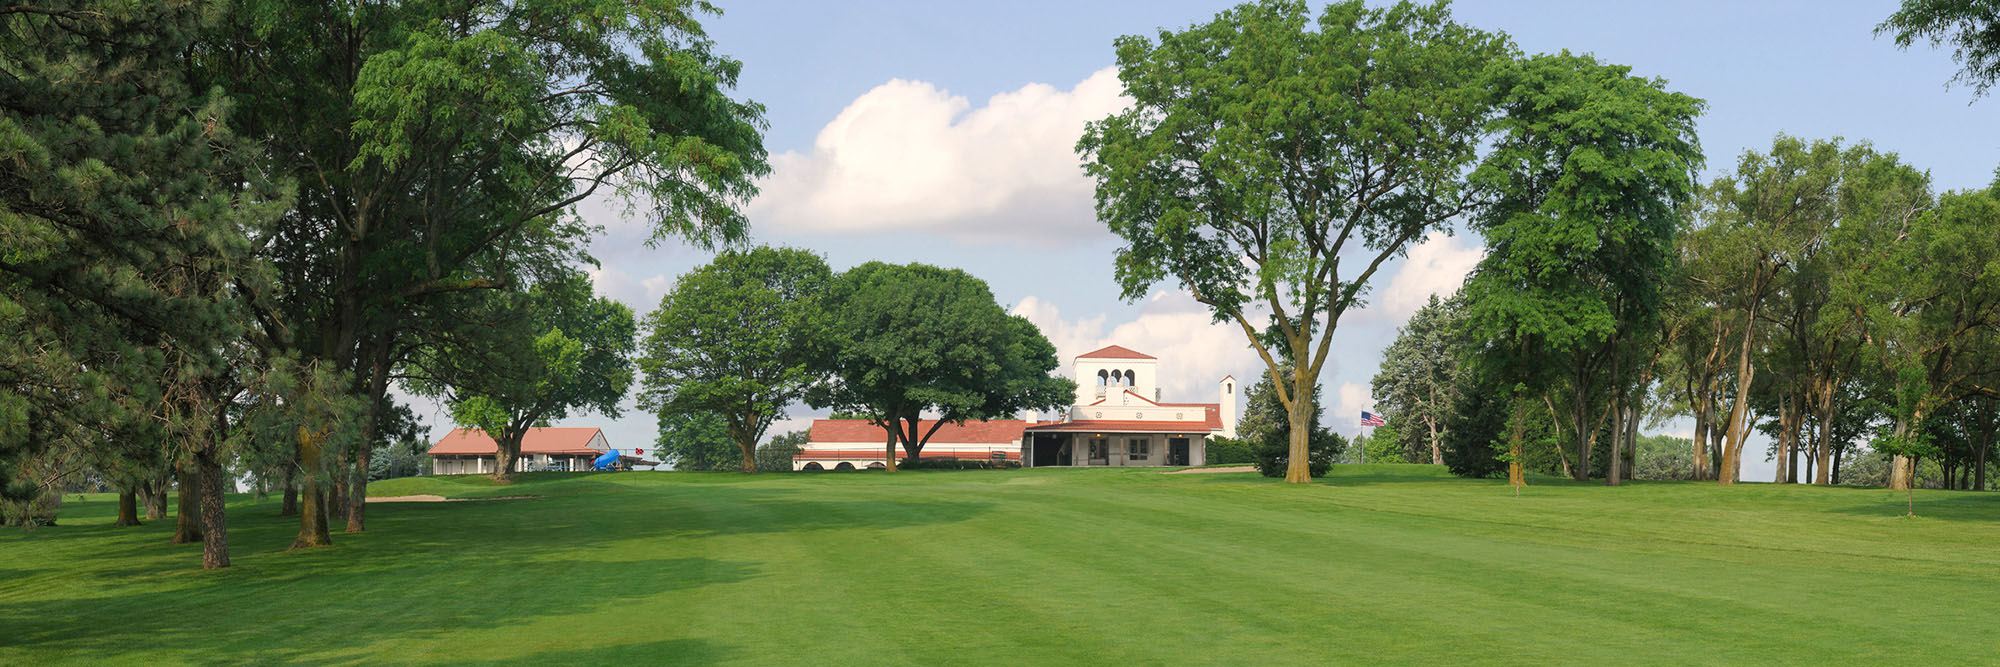 Golf Course Image - Hillcrest Country Club No. 18